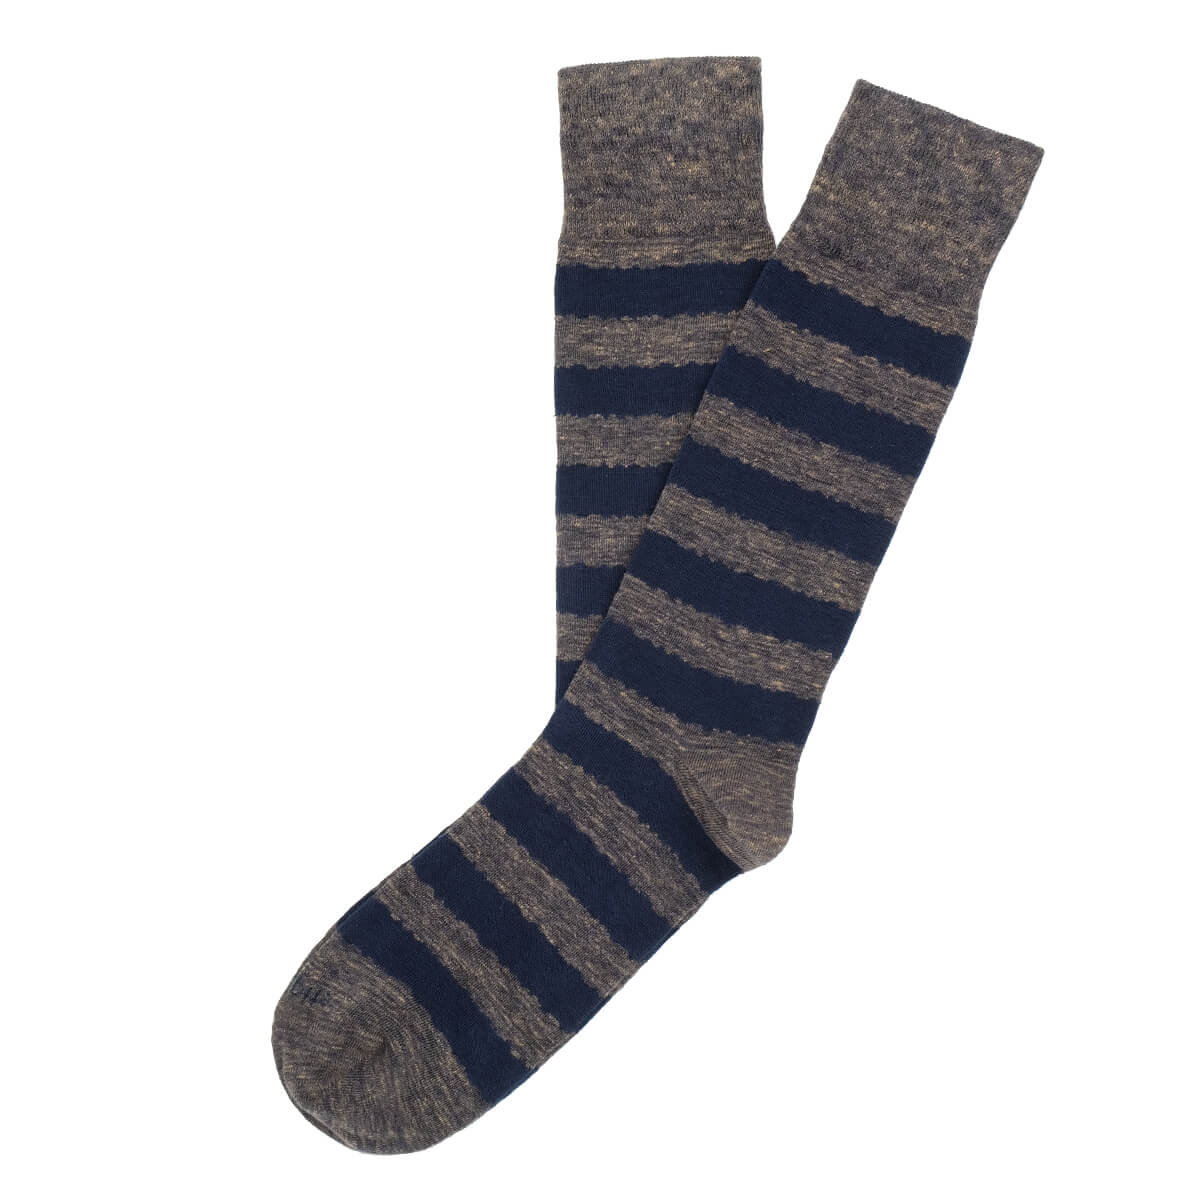 Mens Socks - Iona Stripes Men's Socks - Brown⎪Etiquette Clothiers